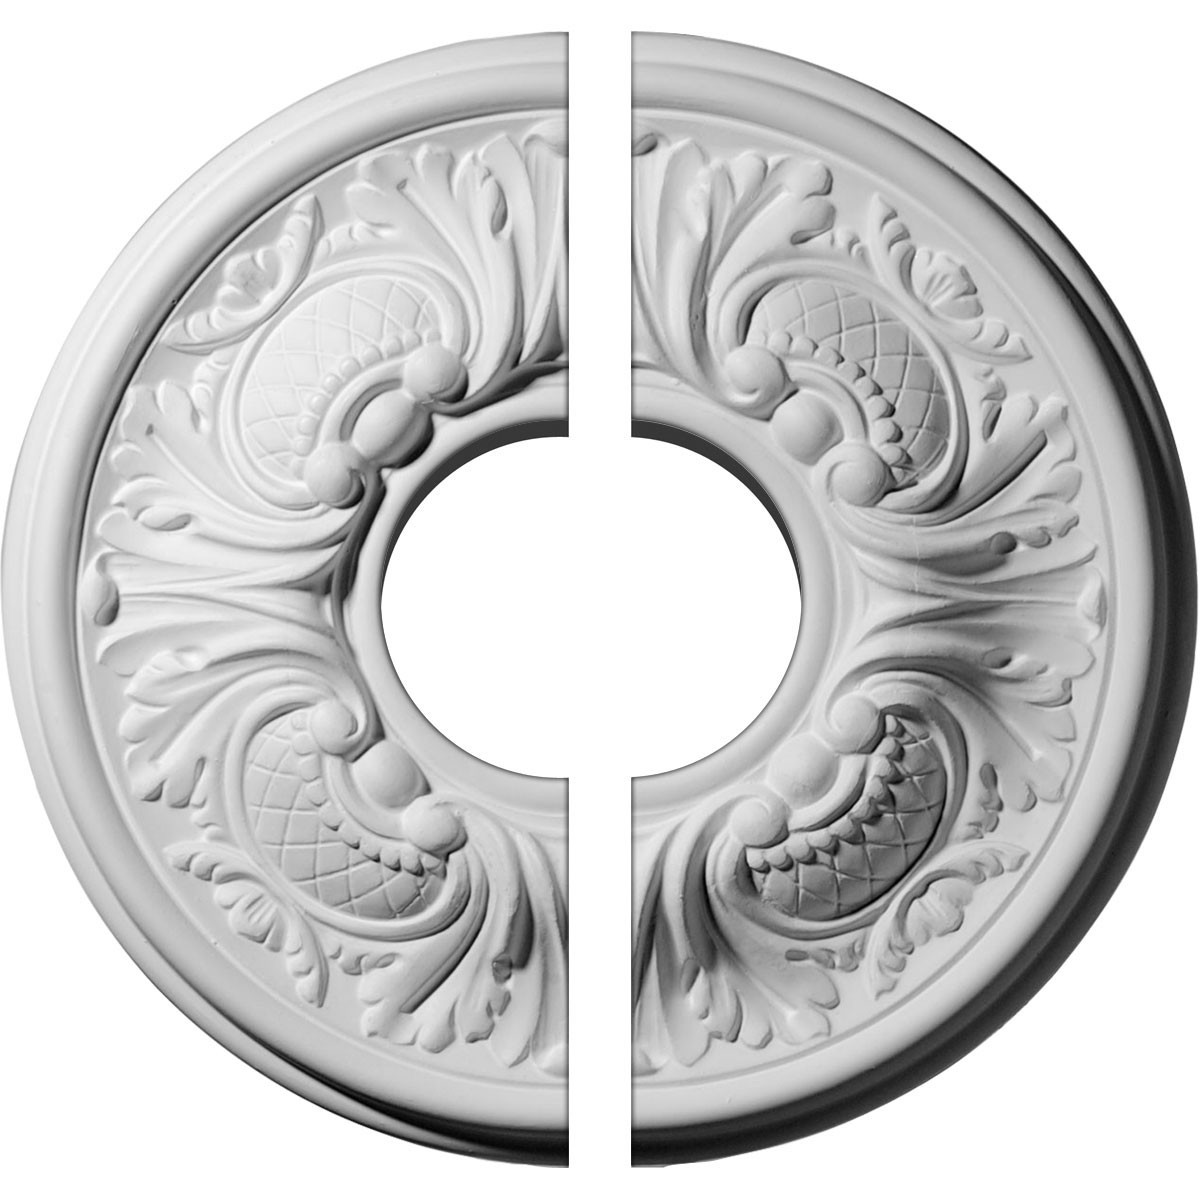 "EM-CM11WA2-03500 - 11 3/4""OD x 3 1/2""ID x 1 1/4""P Wakefield Ceiling Medallion, Two Piece (Fits Canopies up to 3 5/8"")"